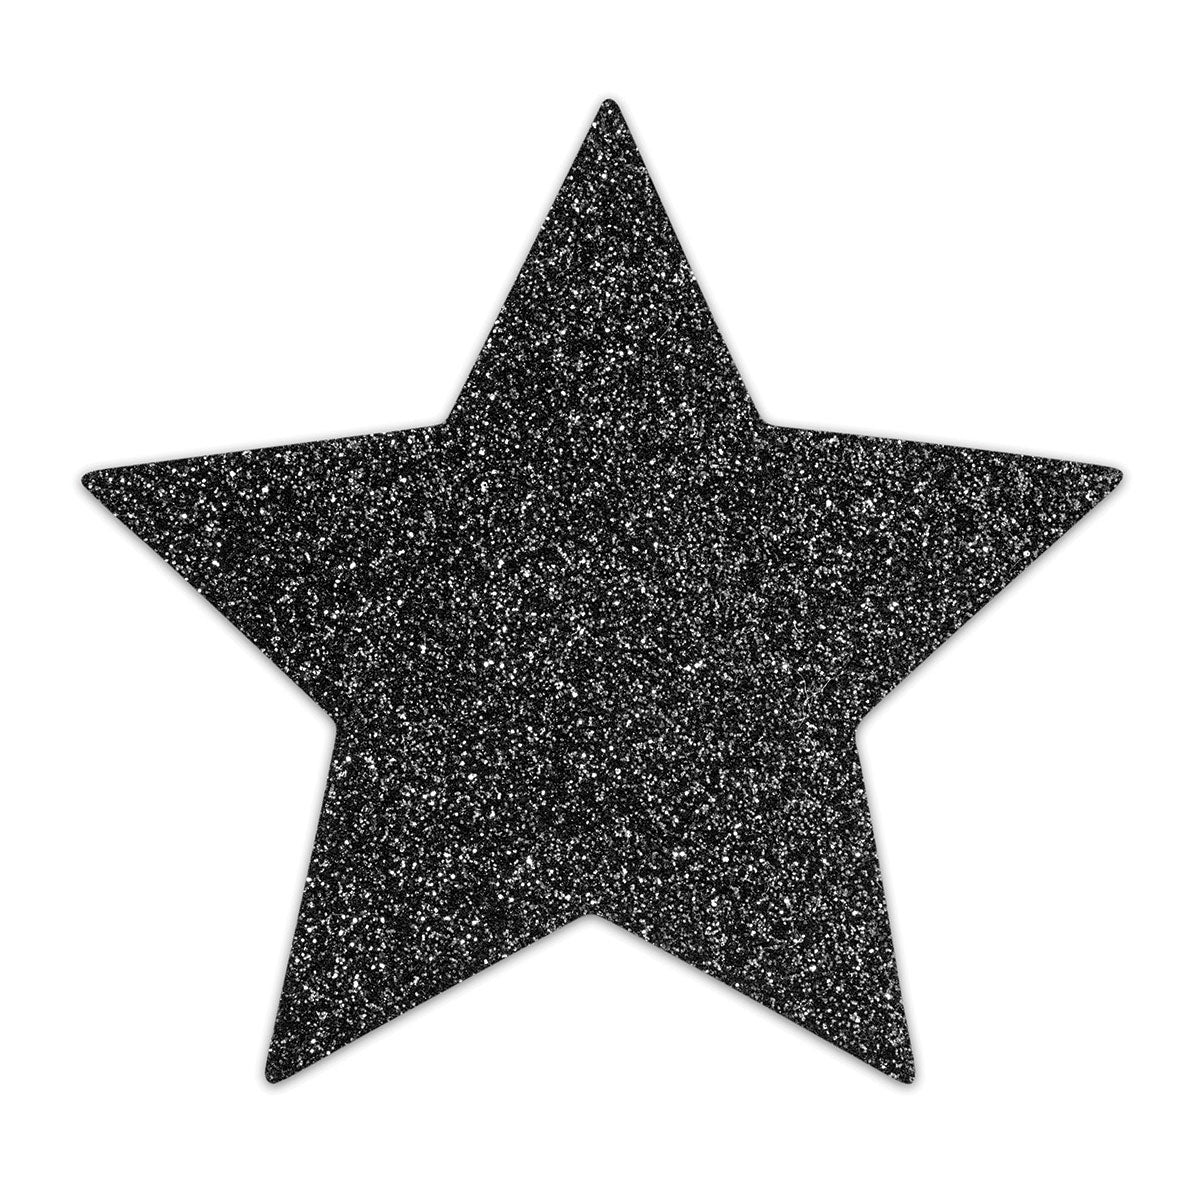 BLACK STAR GLITTERY NIPPLE COVER PASTIES